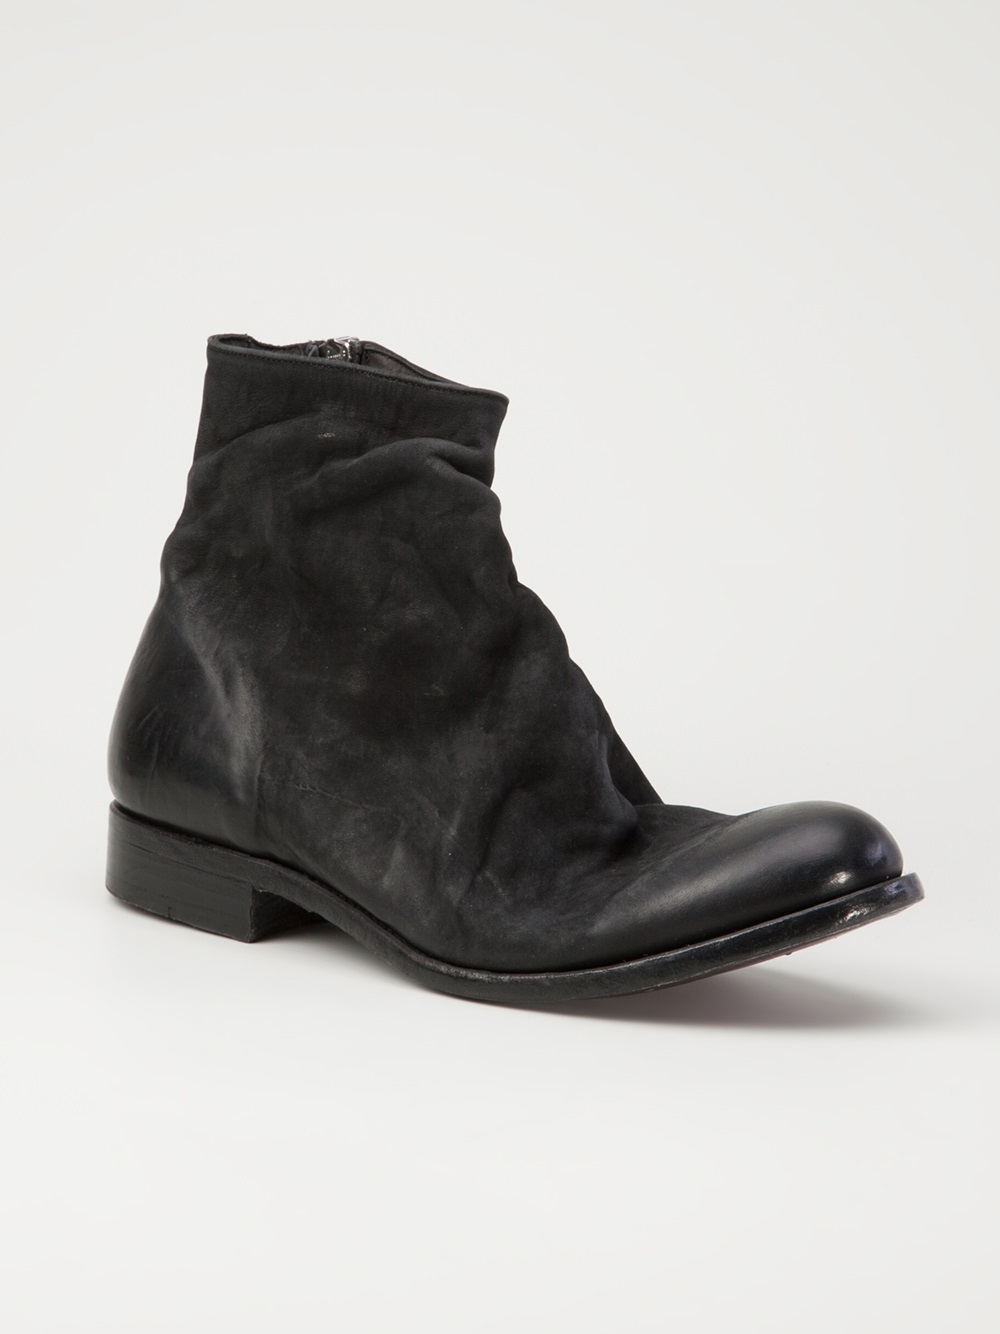 clearance 2015 new The Last Conspiracy buffed sole ankle boots clearance Manchester 100% guaranteed cheap online free shipping cheap 2014 cheap sale cBQG8fJ